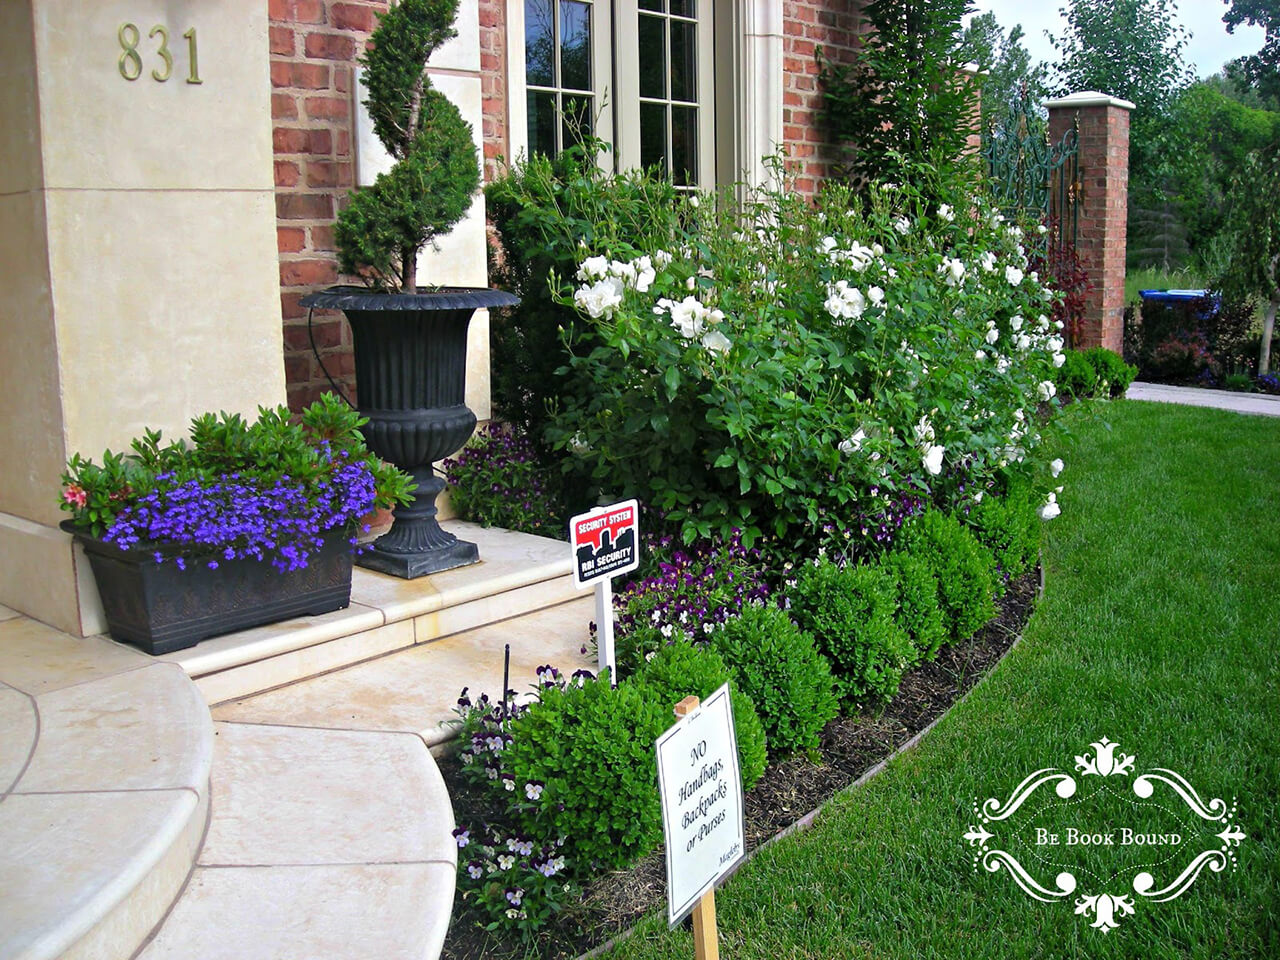 50 Best Front Yard Landscaping Ideas and Garden Designs ... on Patio And Grass Garden Ideas id=60263